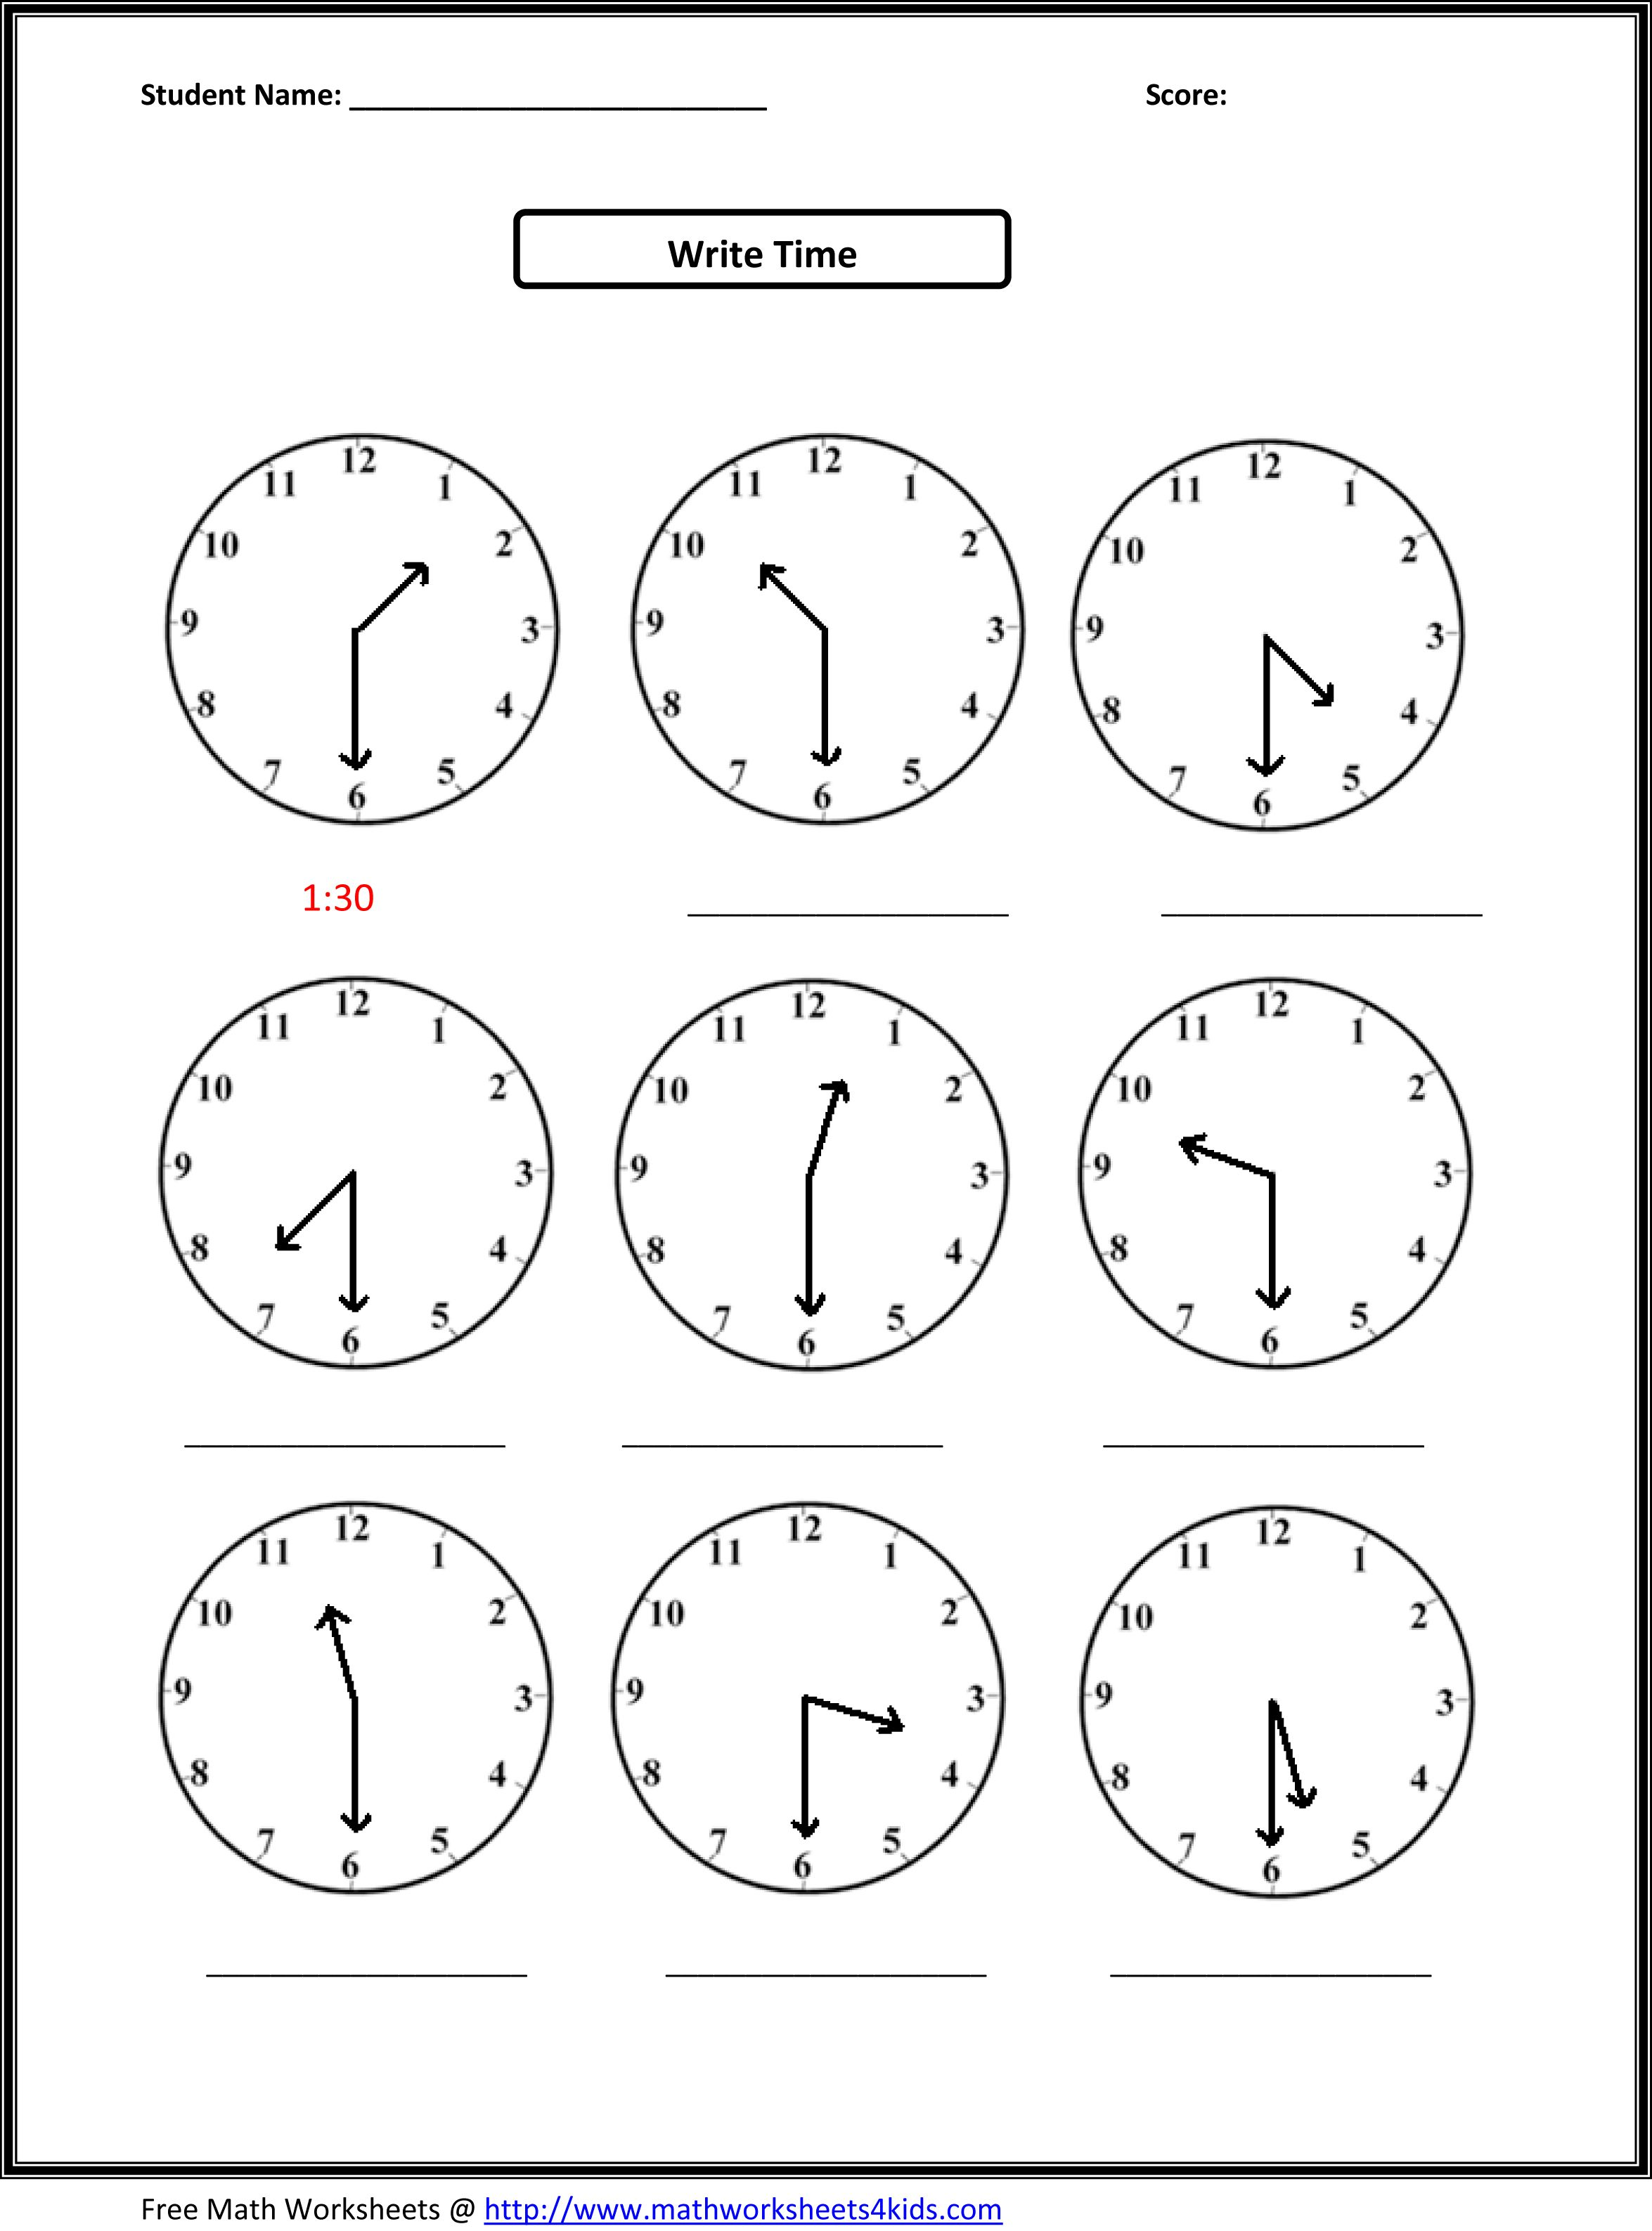 Proatmealus  Picturesque Worksheet On Time For Grade   Reocurent With Lovable Free Printable Telling Time Worksheets Nd Grade  Reocurent With Cool Multiplication Of  Digit Numbers Worksheets Also Worksheet Place Value In Addition Promotion Points Worksheet Calculator And Grade  Maths Worksheets As Well As Rewrite The Sentence Correctly Worksheet Additionally Printing Letters Worksheet From Reocurentcom With Proatmealus  Lovable Worksheet On Time For Grade   Reocurent With Cool Free Printable Telling Time Worksheets Nd Grade  Reocurent And Picturesque Multiplication Of  Digit Numbers Worksheets Also Worksheet Place Value In Addition Promotion Points Worksheet Calculator From Reocurentcom